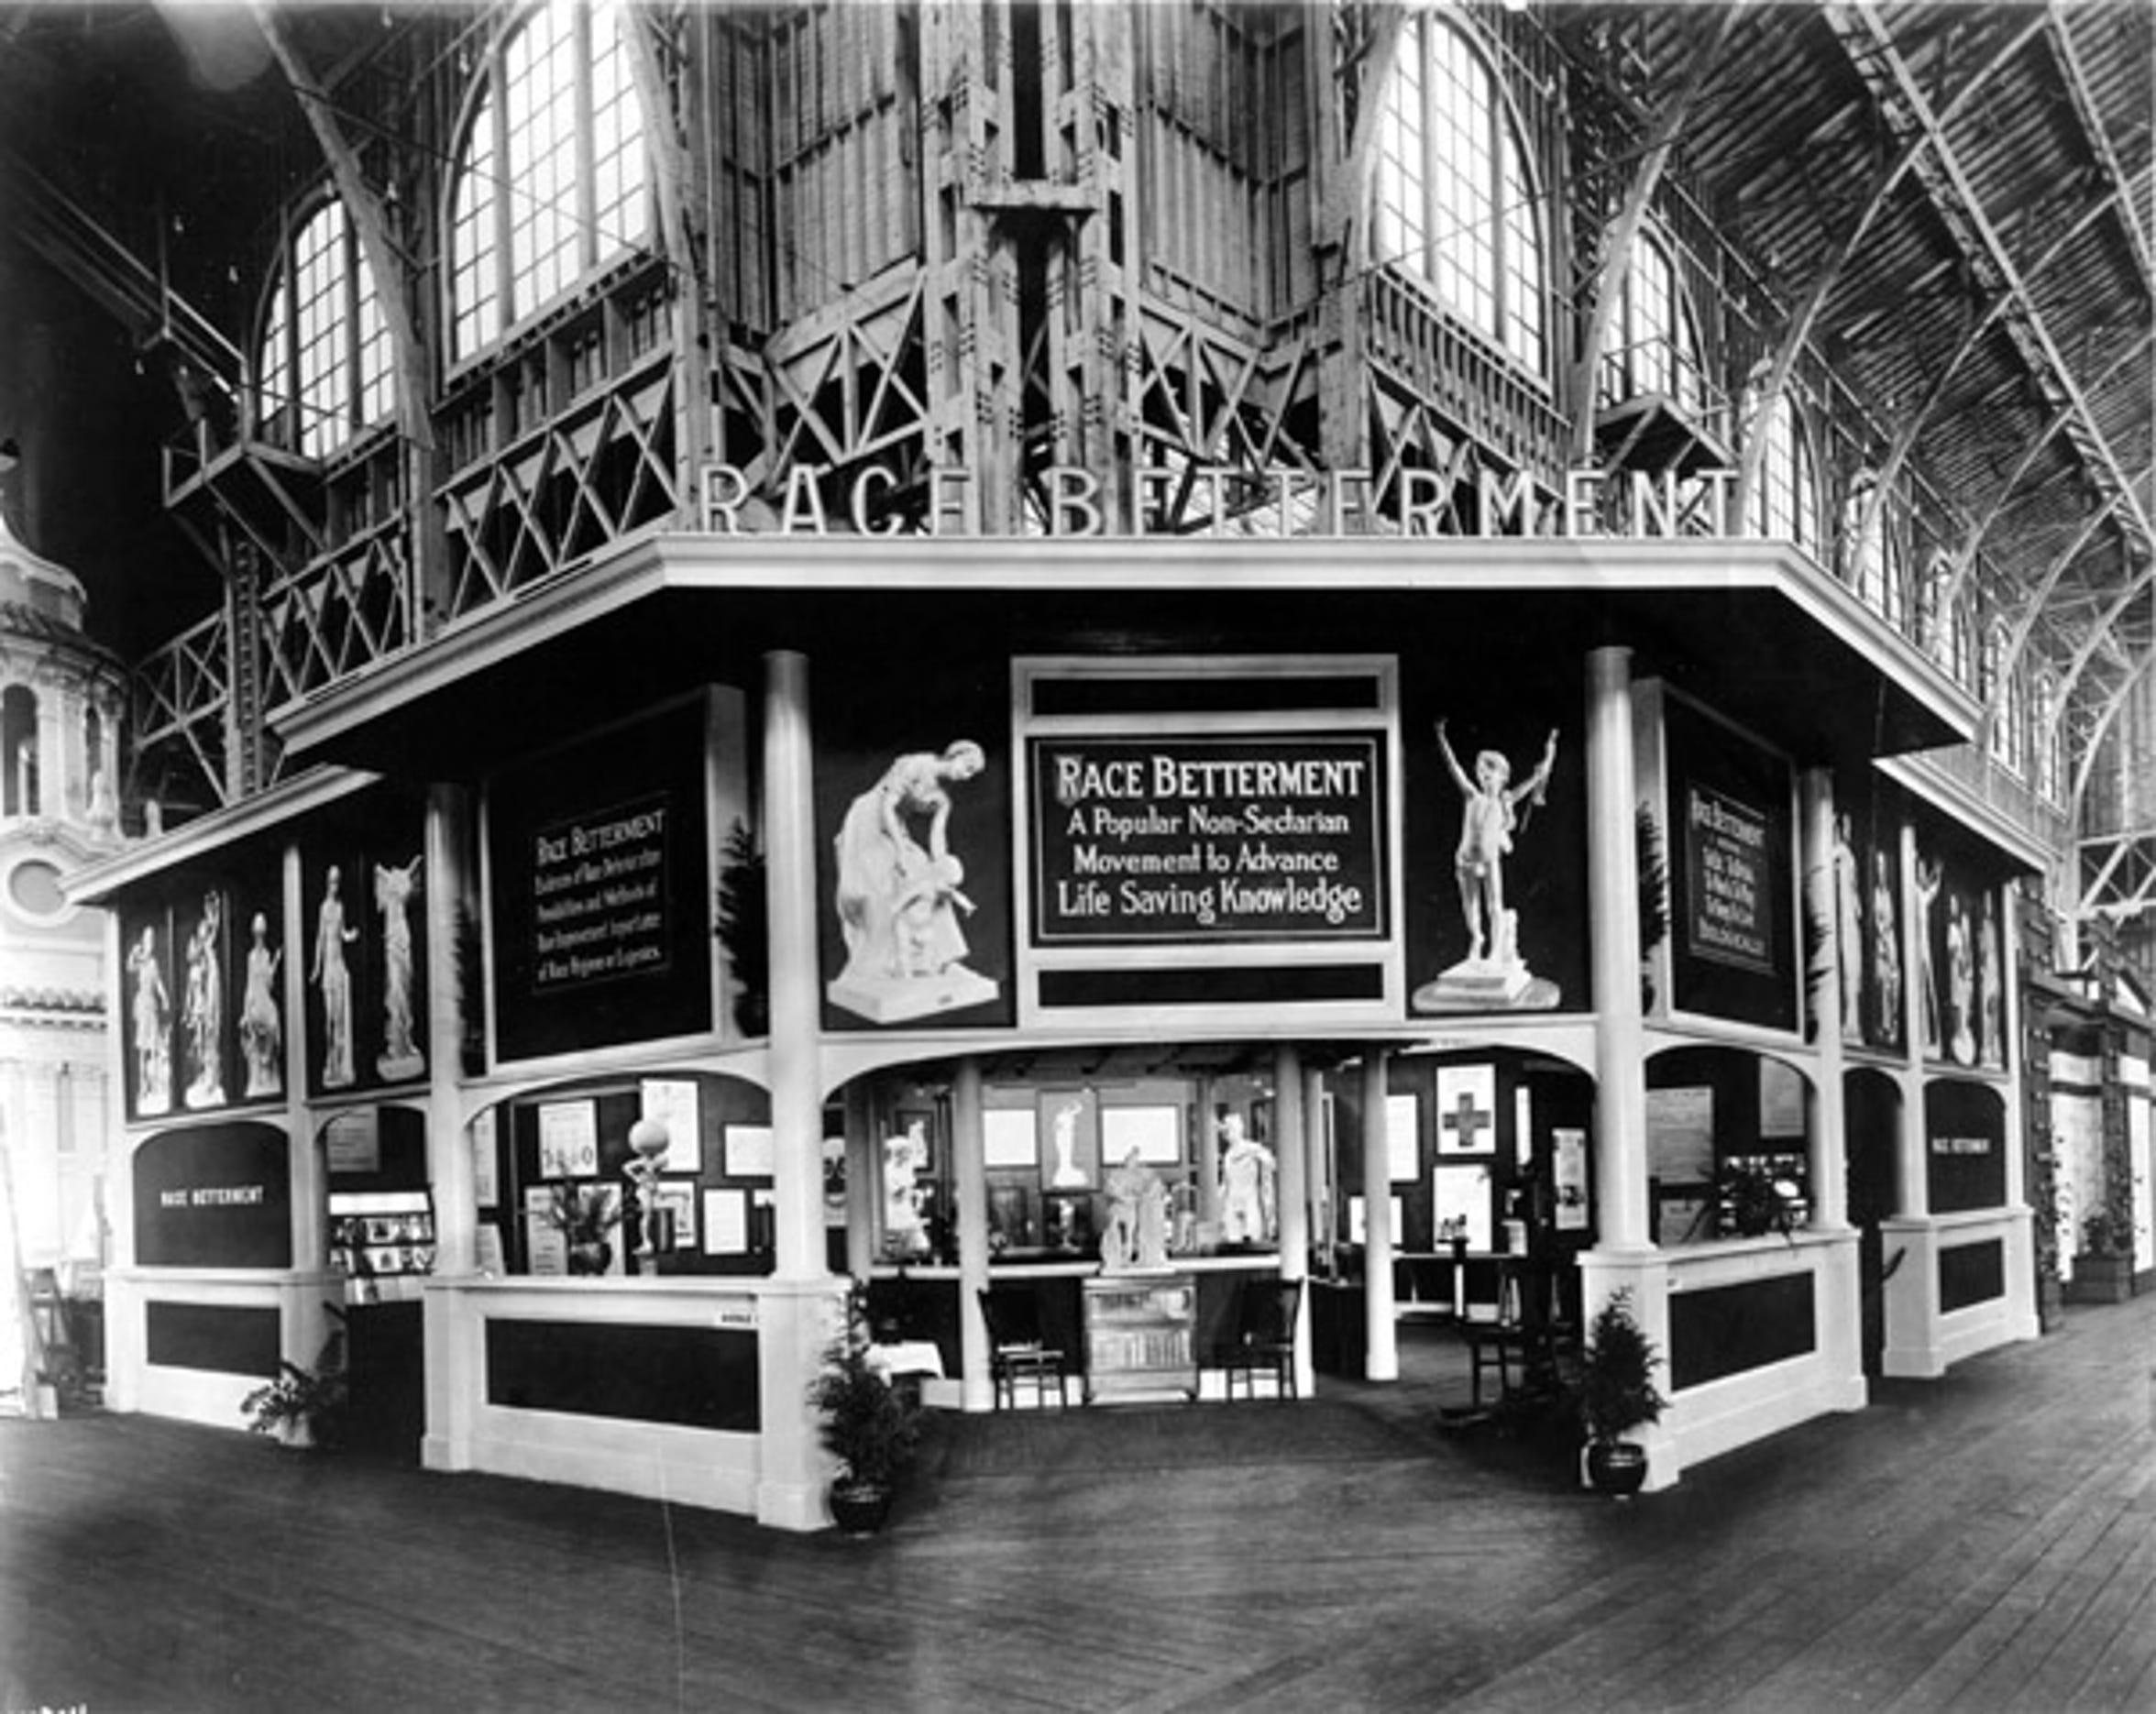 The Race Betterment Pavilion during the 1915 Panama-Pacific Exposition.